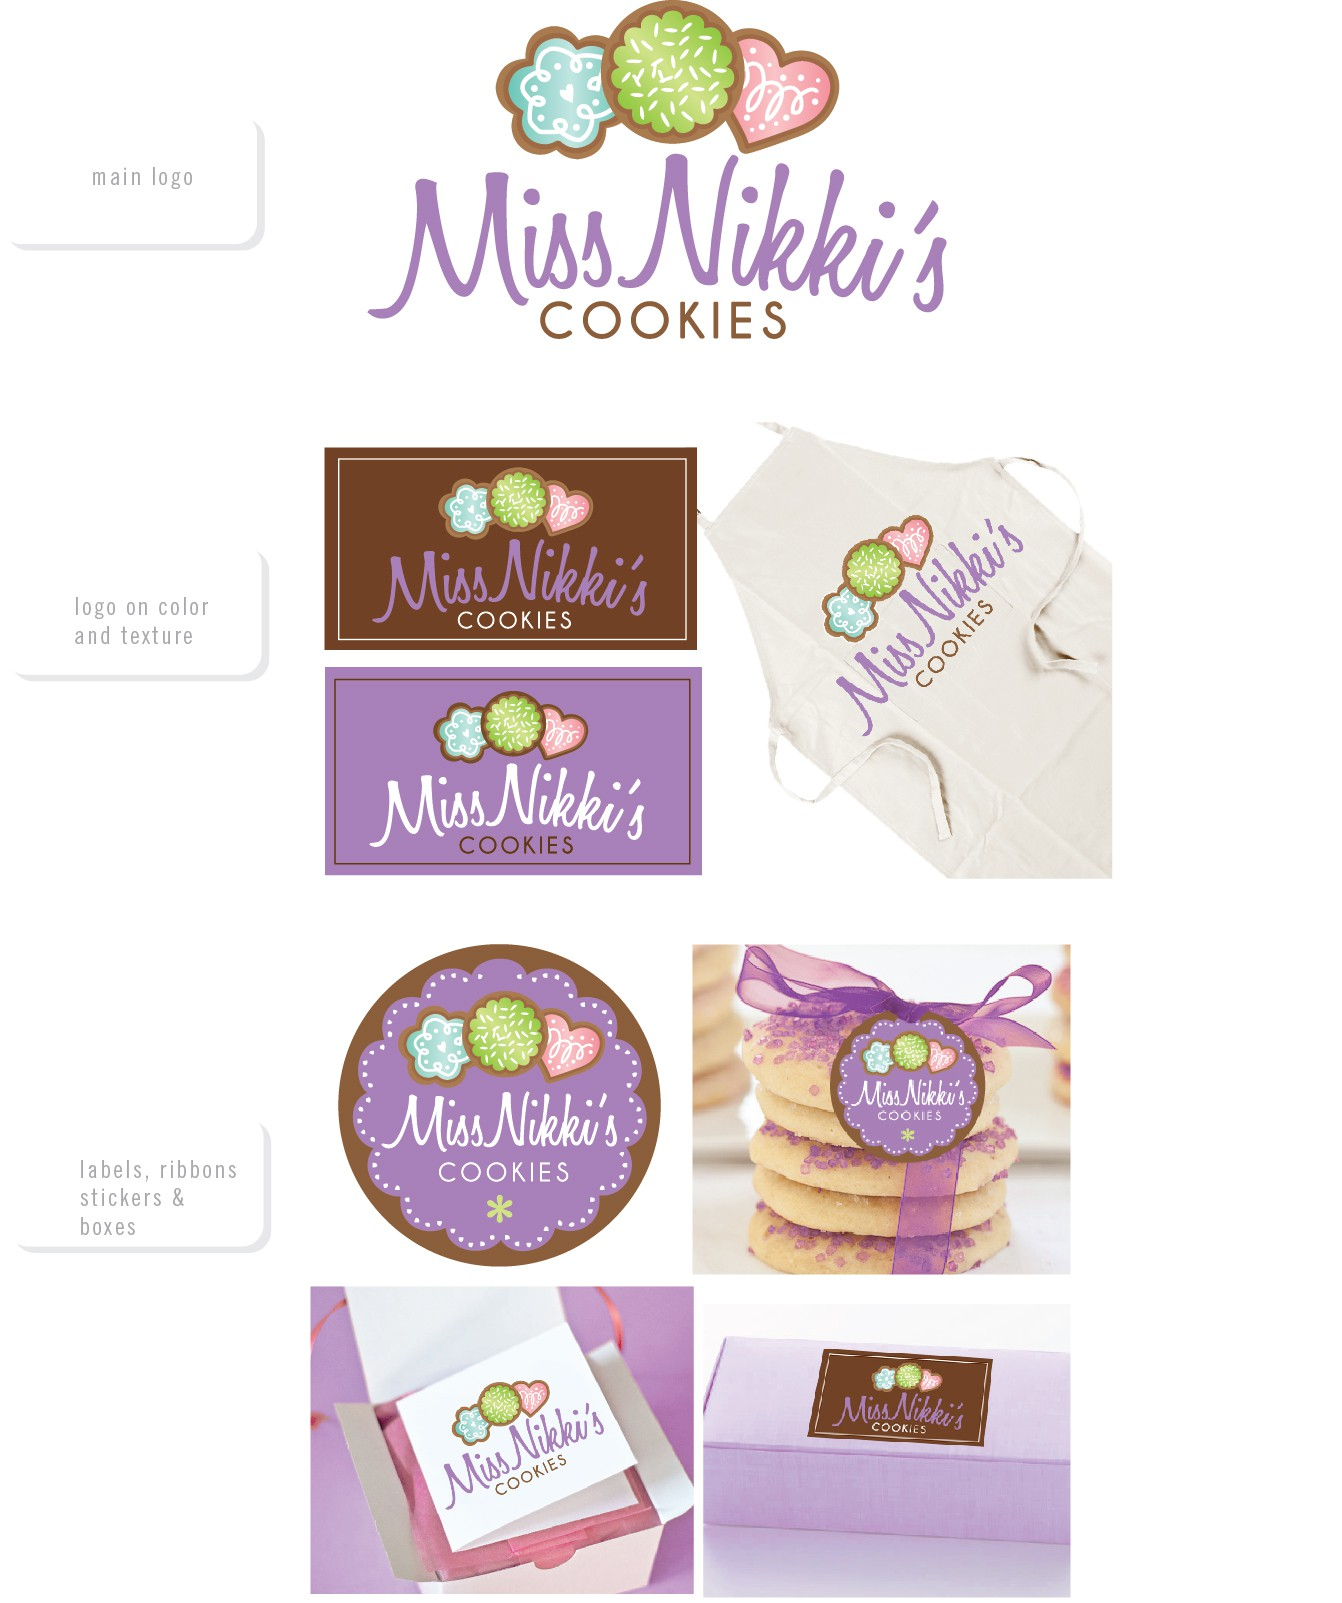 New logo wanted for Miss Nikki's Cookies